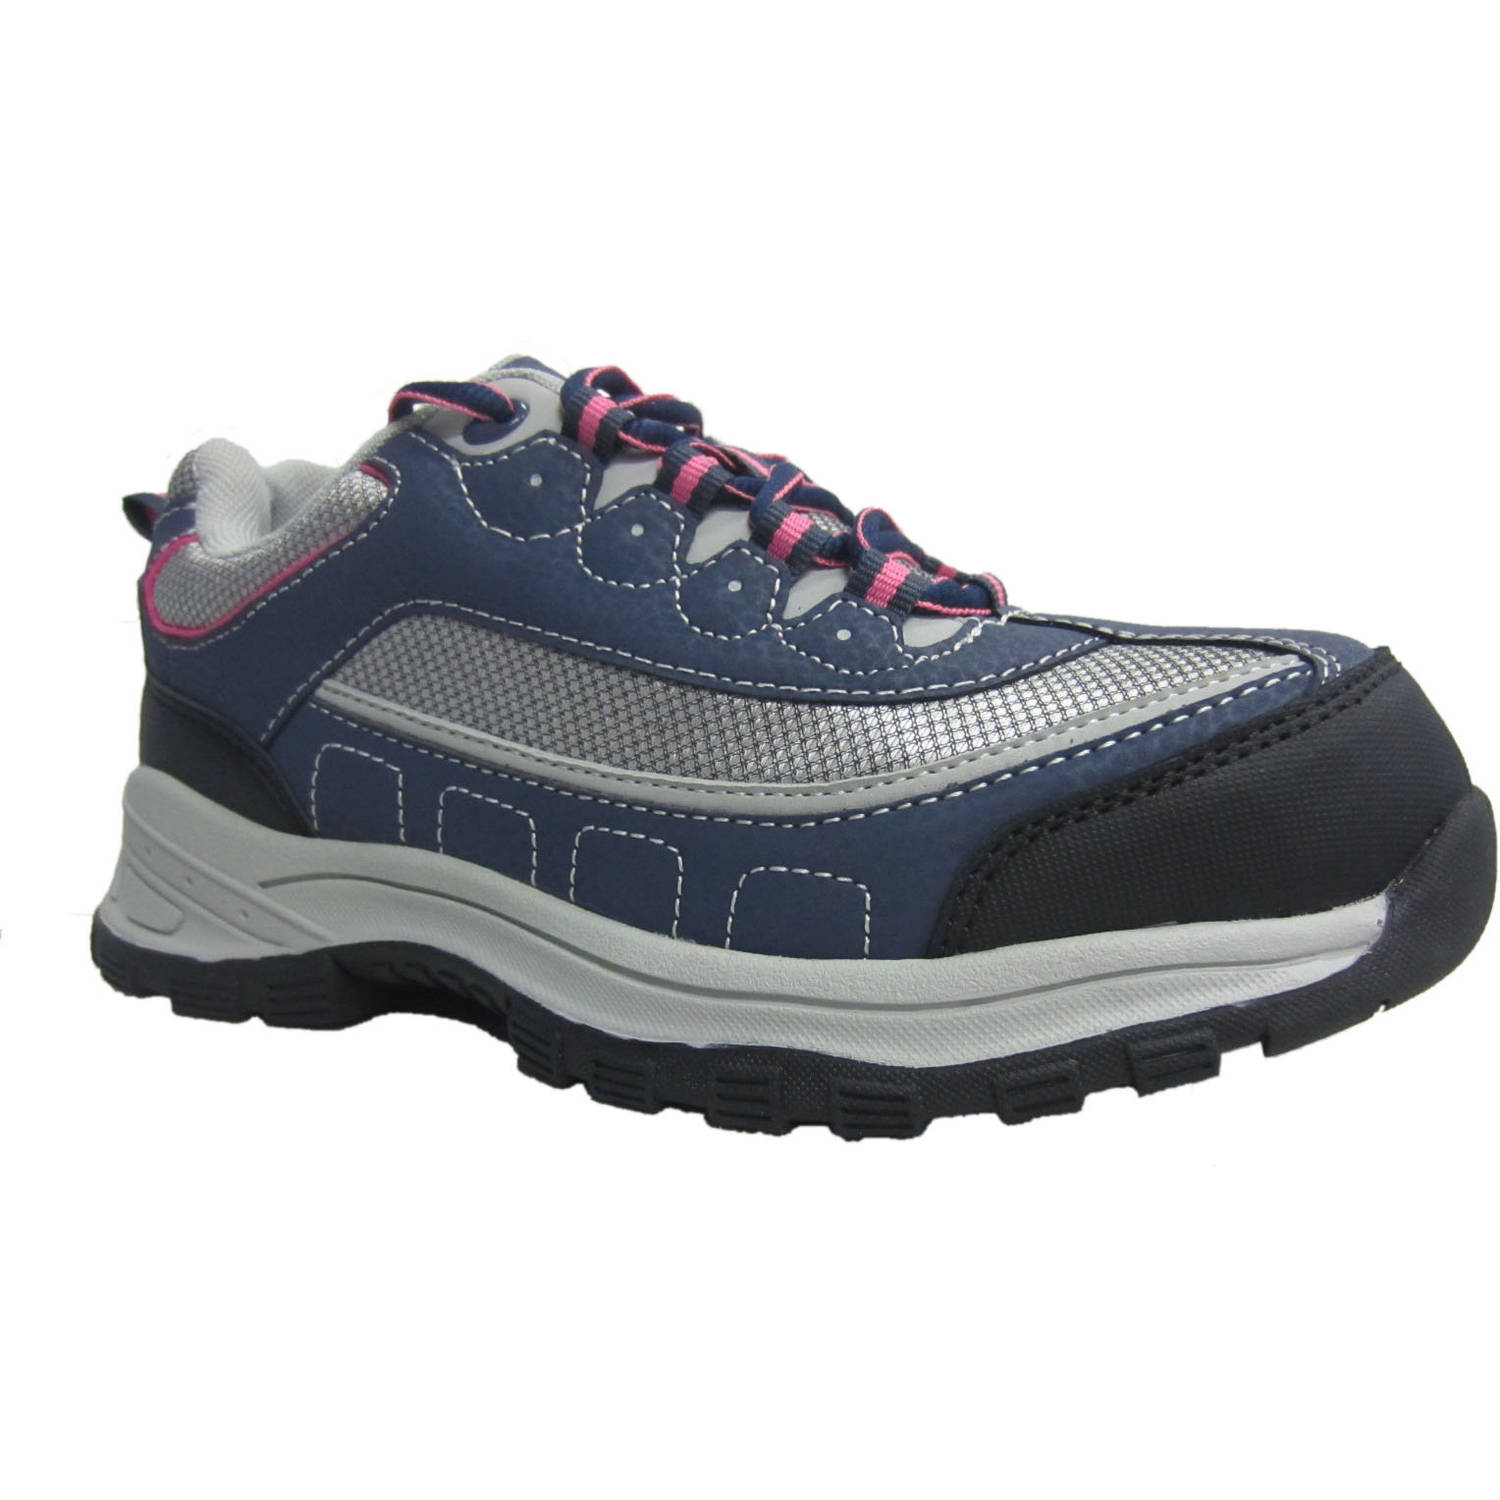 Brahma Women's Sacha Steel Toe Low Work Shoe